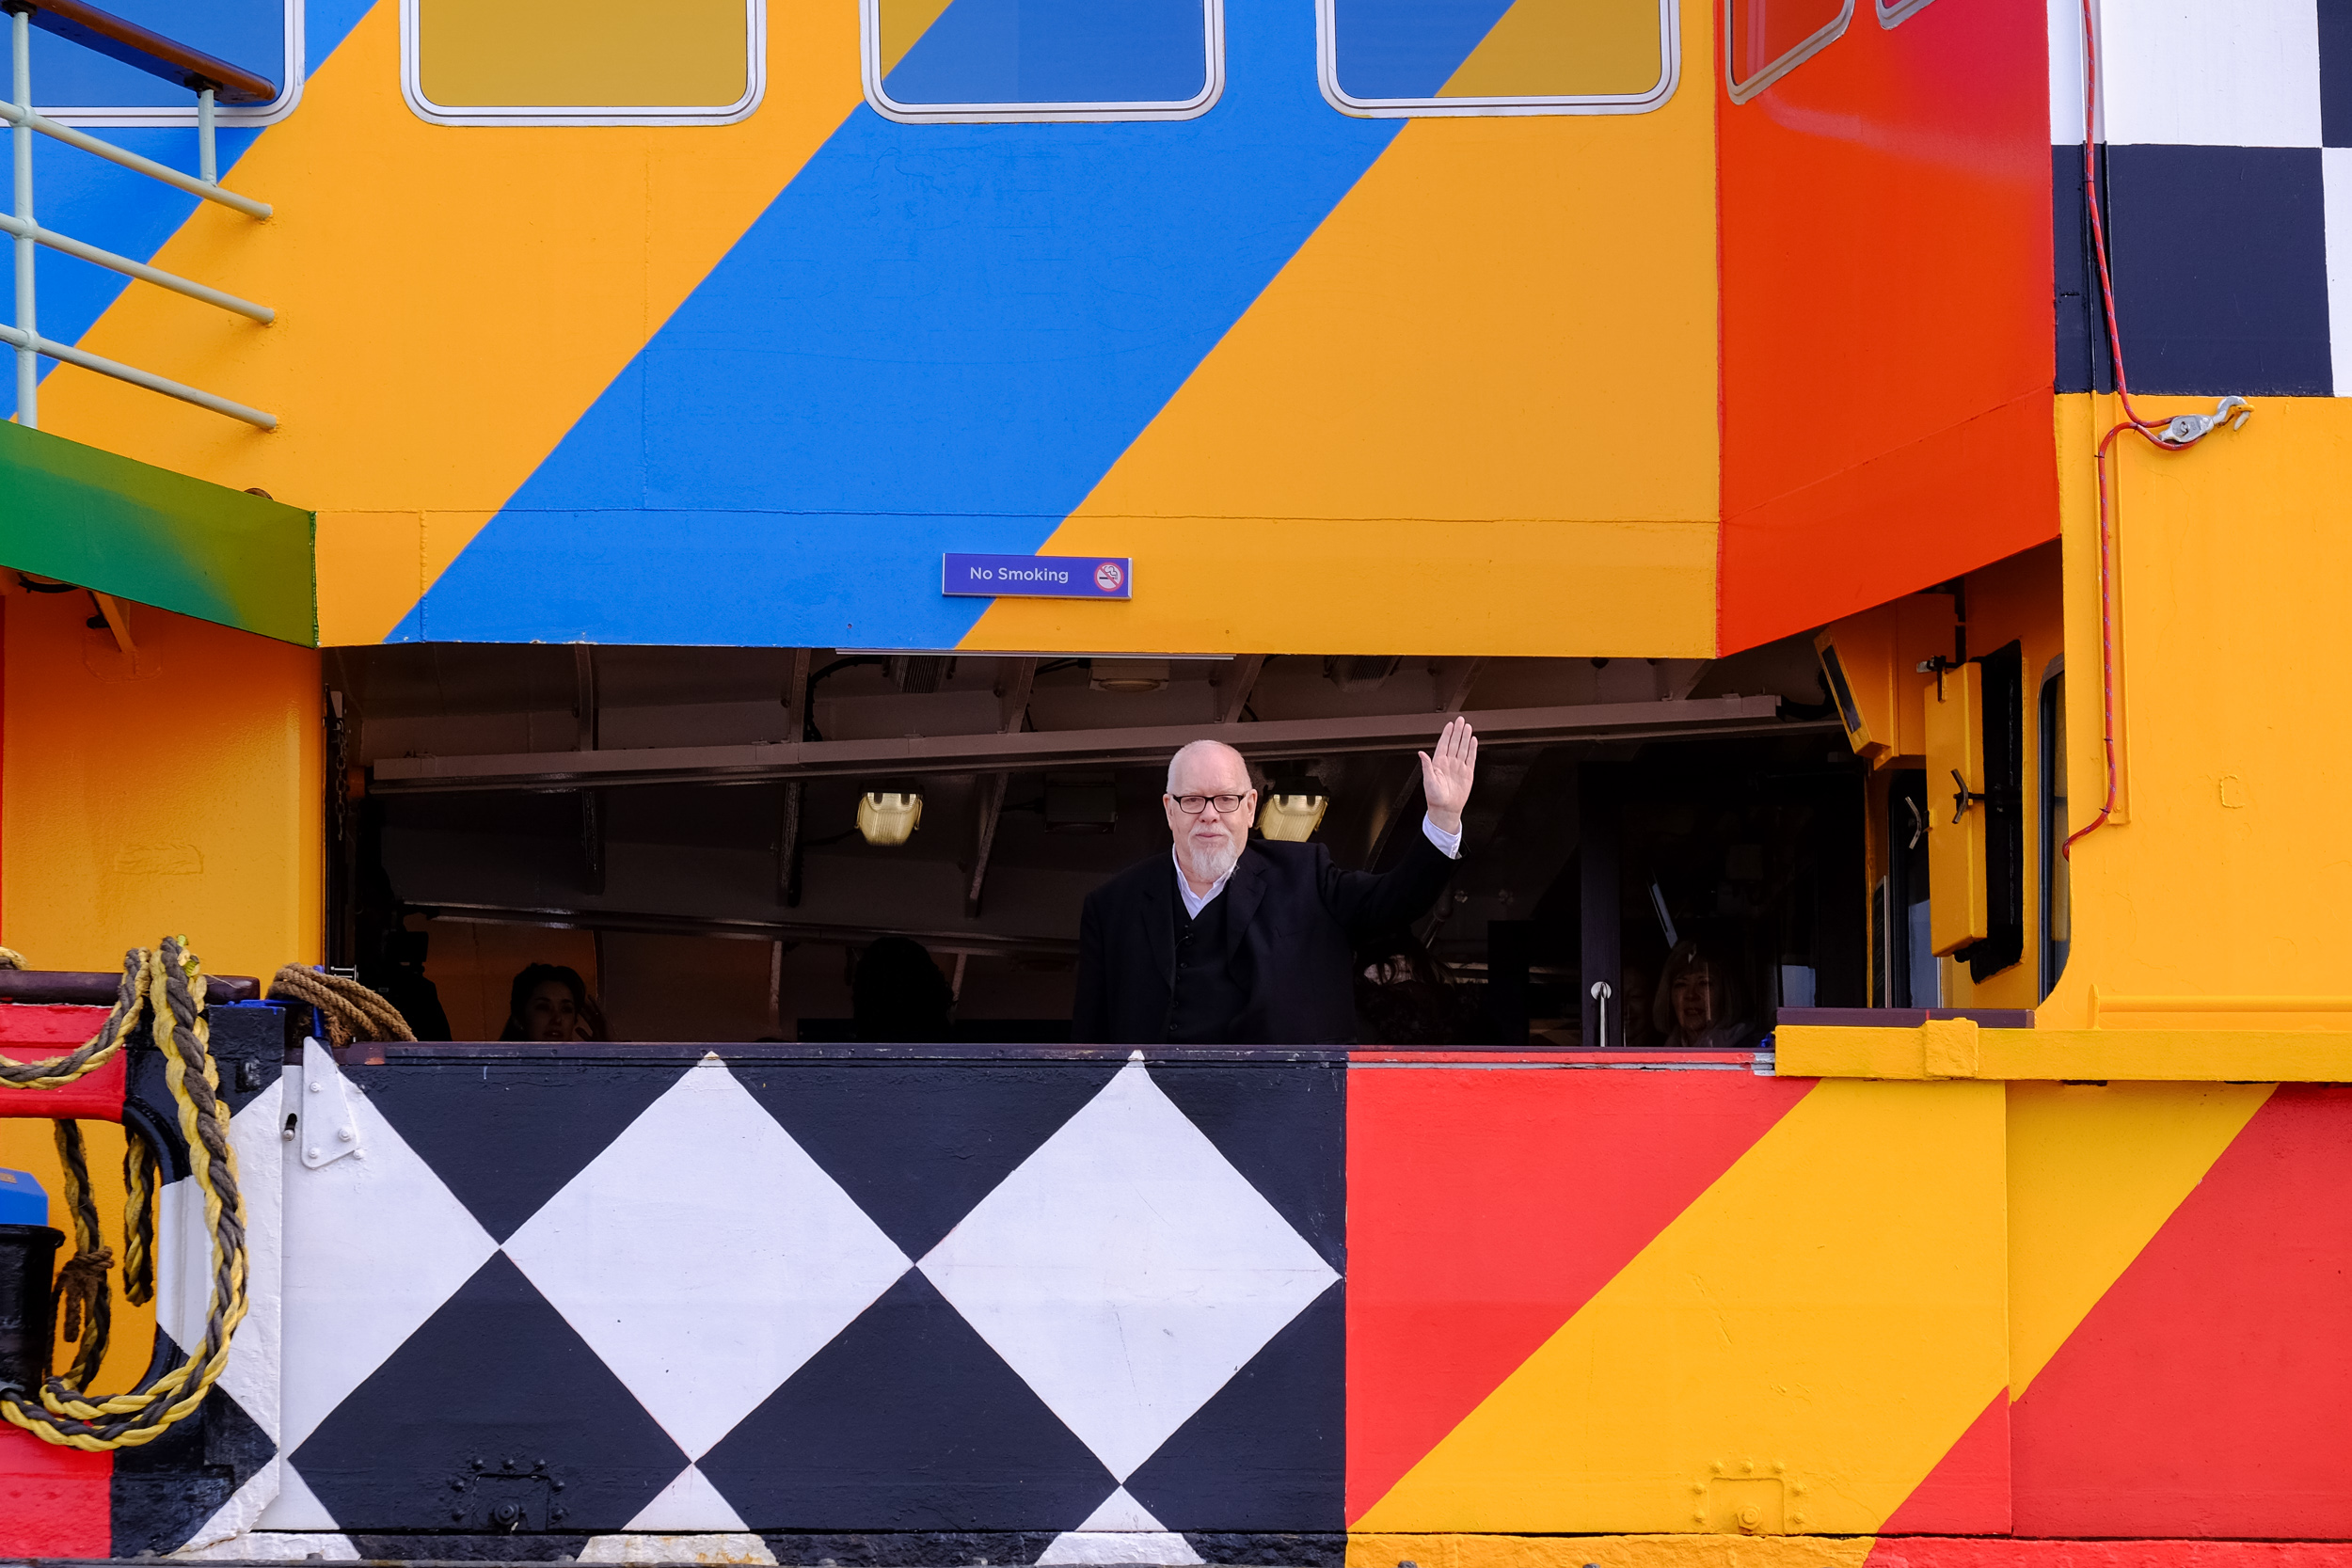 Dazzle Ferry Mersey, Everybody Razzle Dazzle, Sir Peter Blake, 2015. Image credit - Mark McNulty